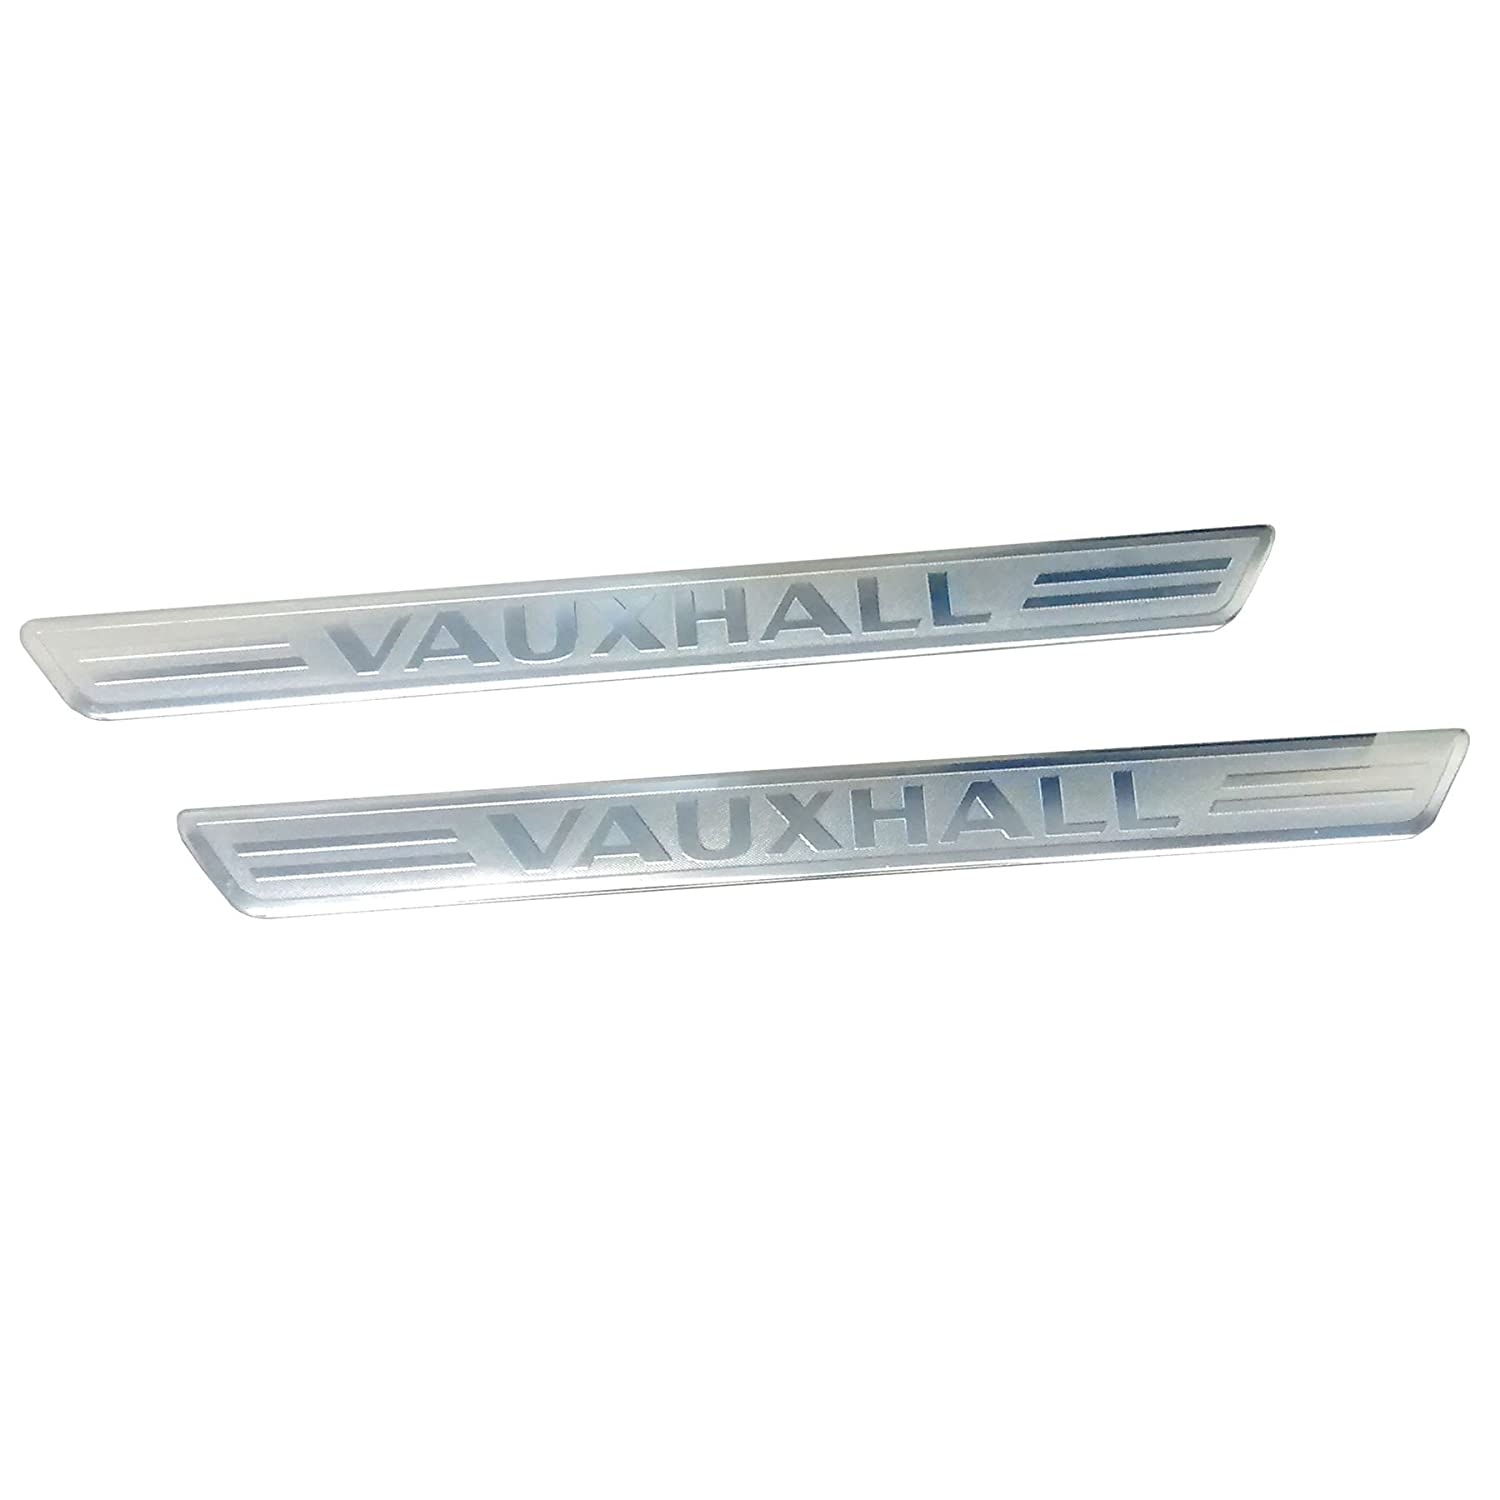 Door Sill Kick Plates Genuine Official Gm P/N 13318265 Vauxhall (Genuine OE)